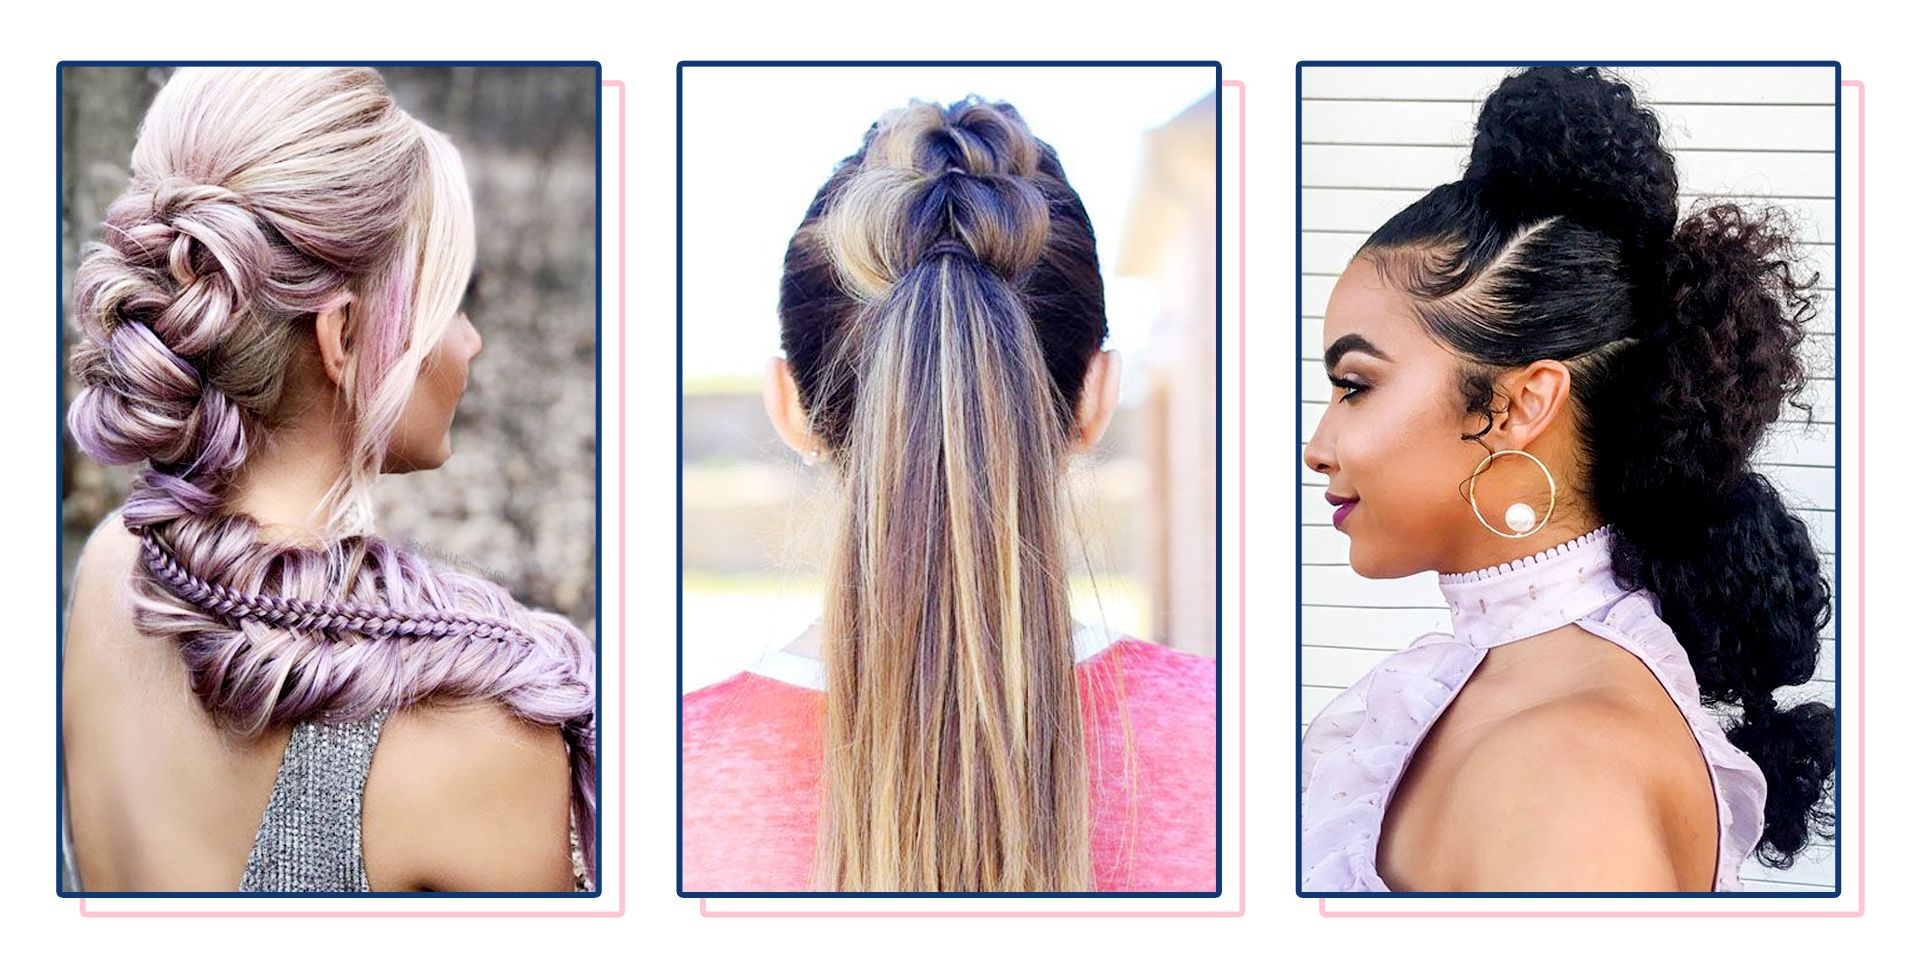 40 Best Prom Updos For 2019 – Easy Prom Updo Hairstyles In Well Known Messy Braided Prom Updos (View 15 of 20)